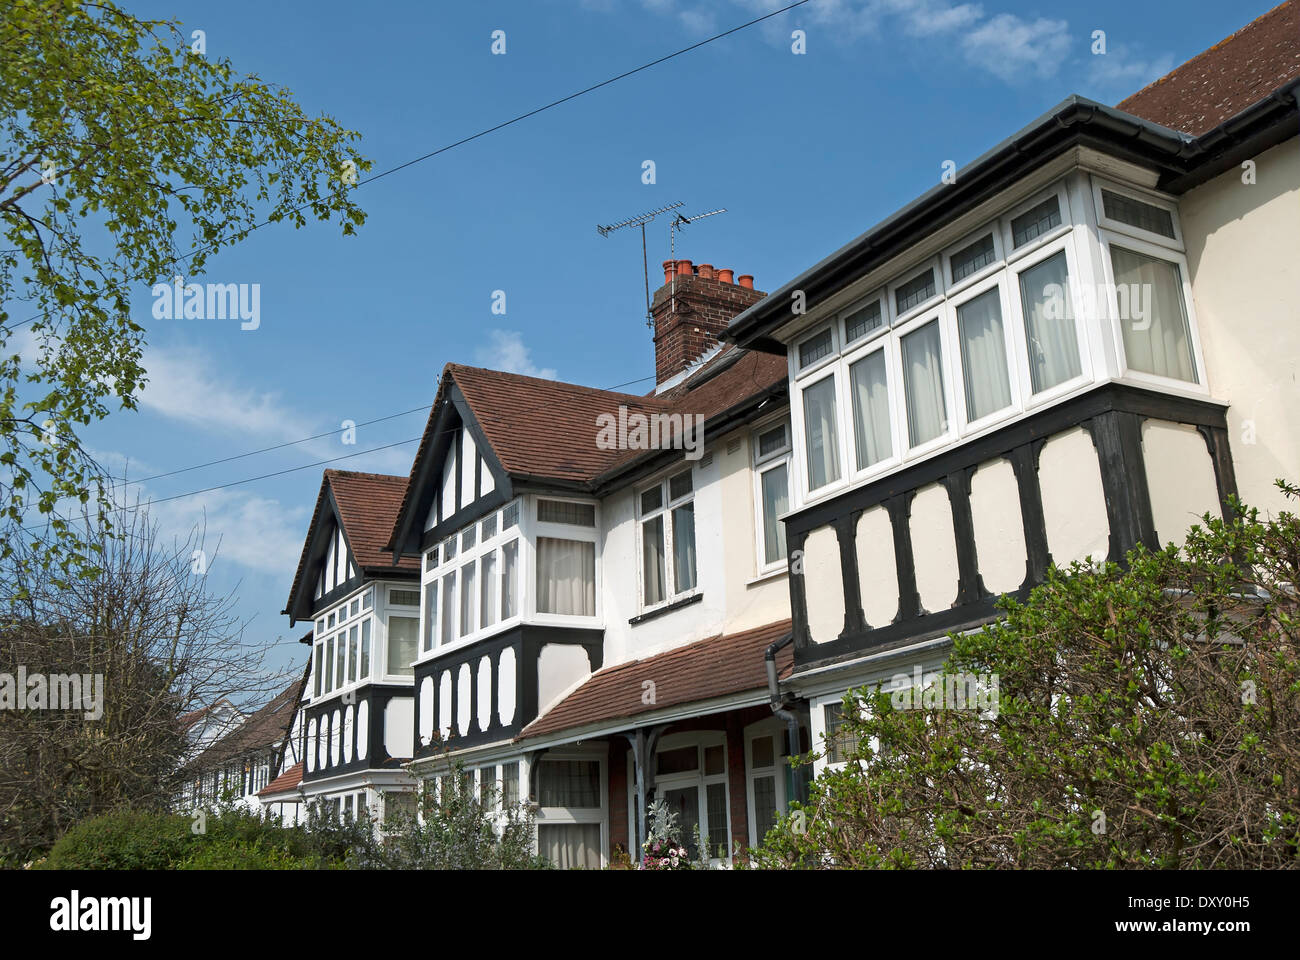 terraced houses with mock tudor features in teddington, middlesex, england - Stock Image